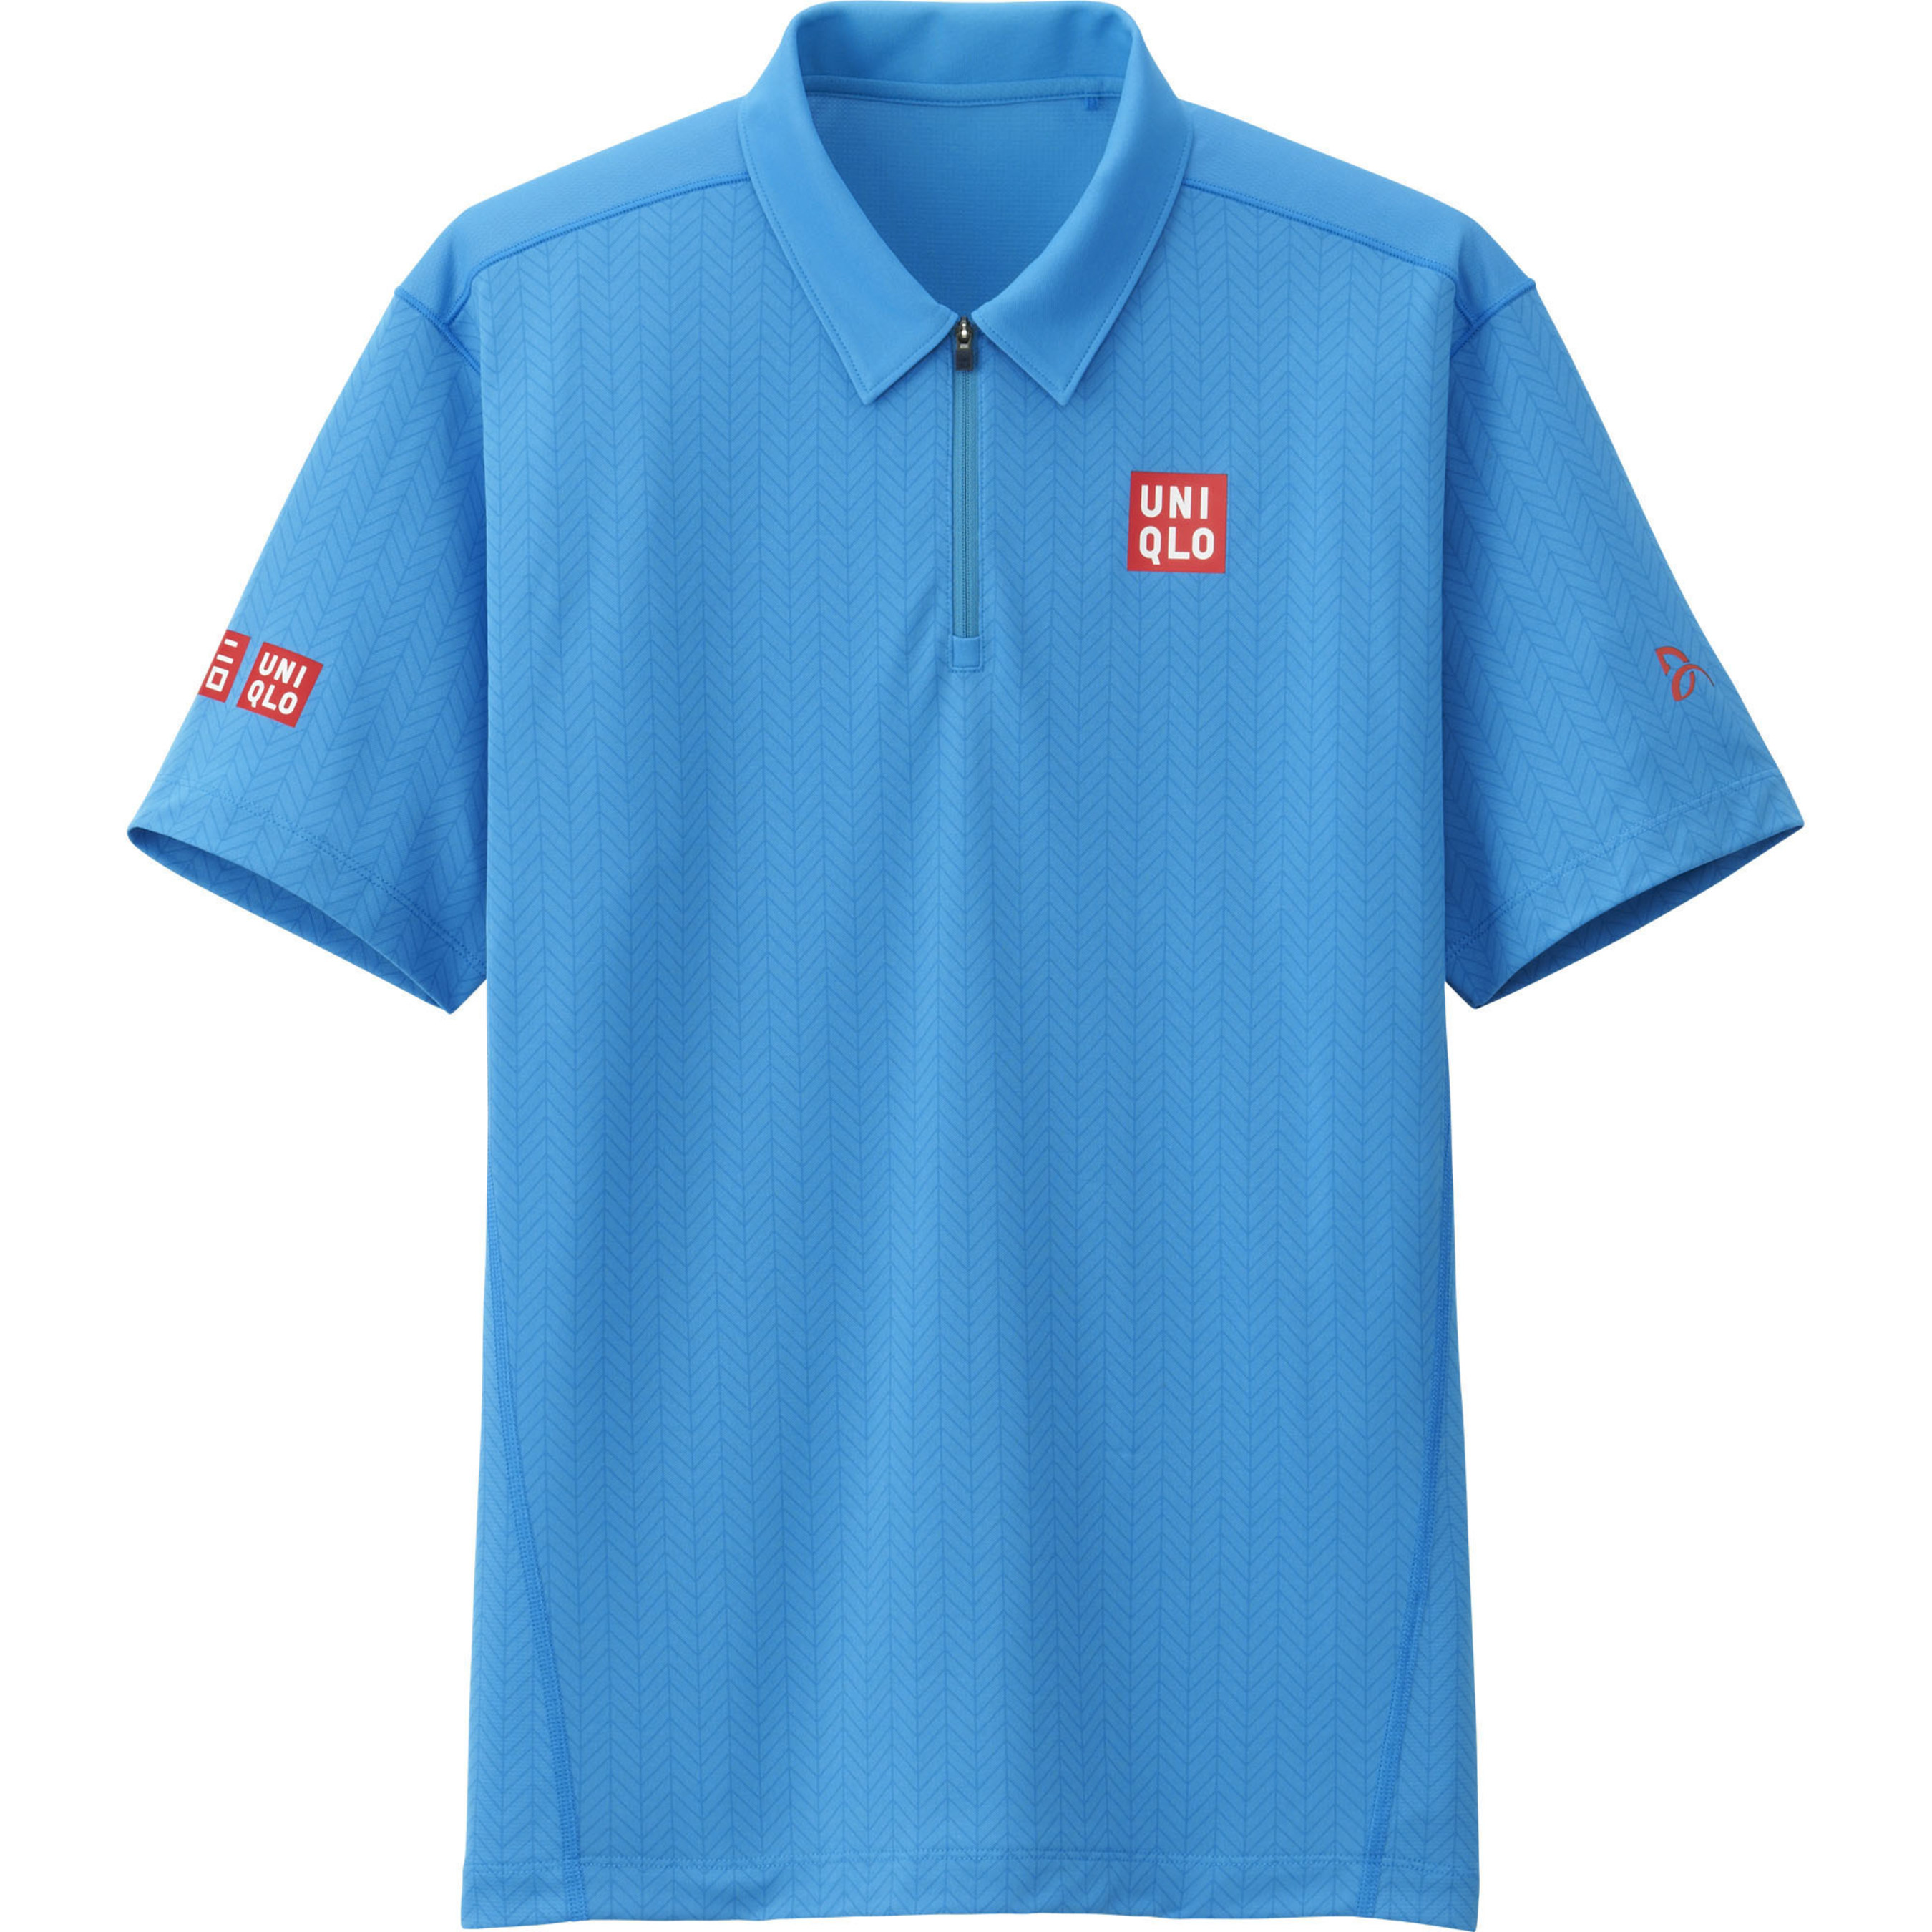 Uniqlo Launches New Game Wear Worn By Global Brand Ambassadors At The Tennis Tournament In The Us From August 25